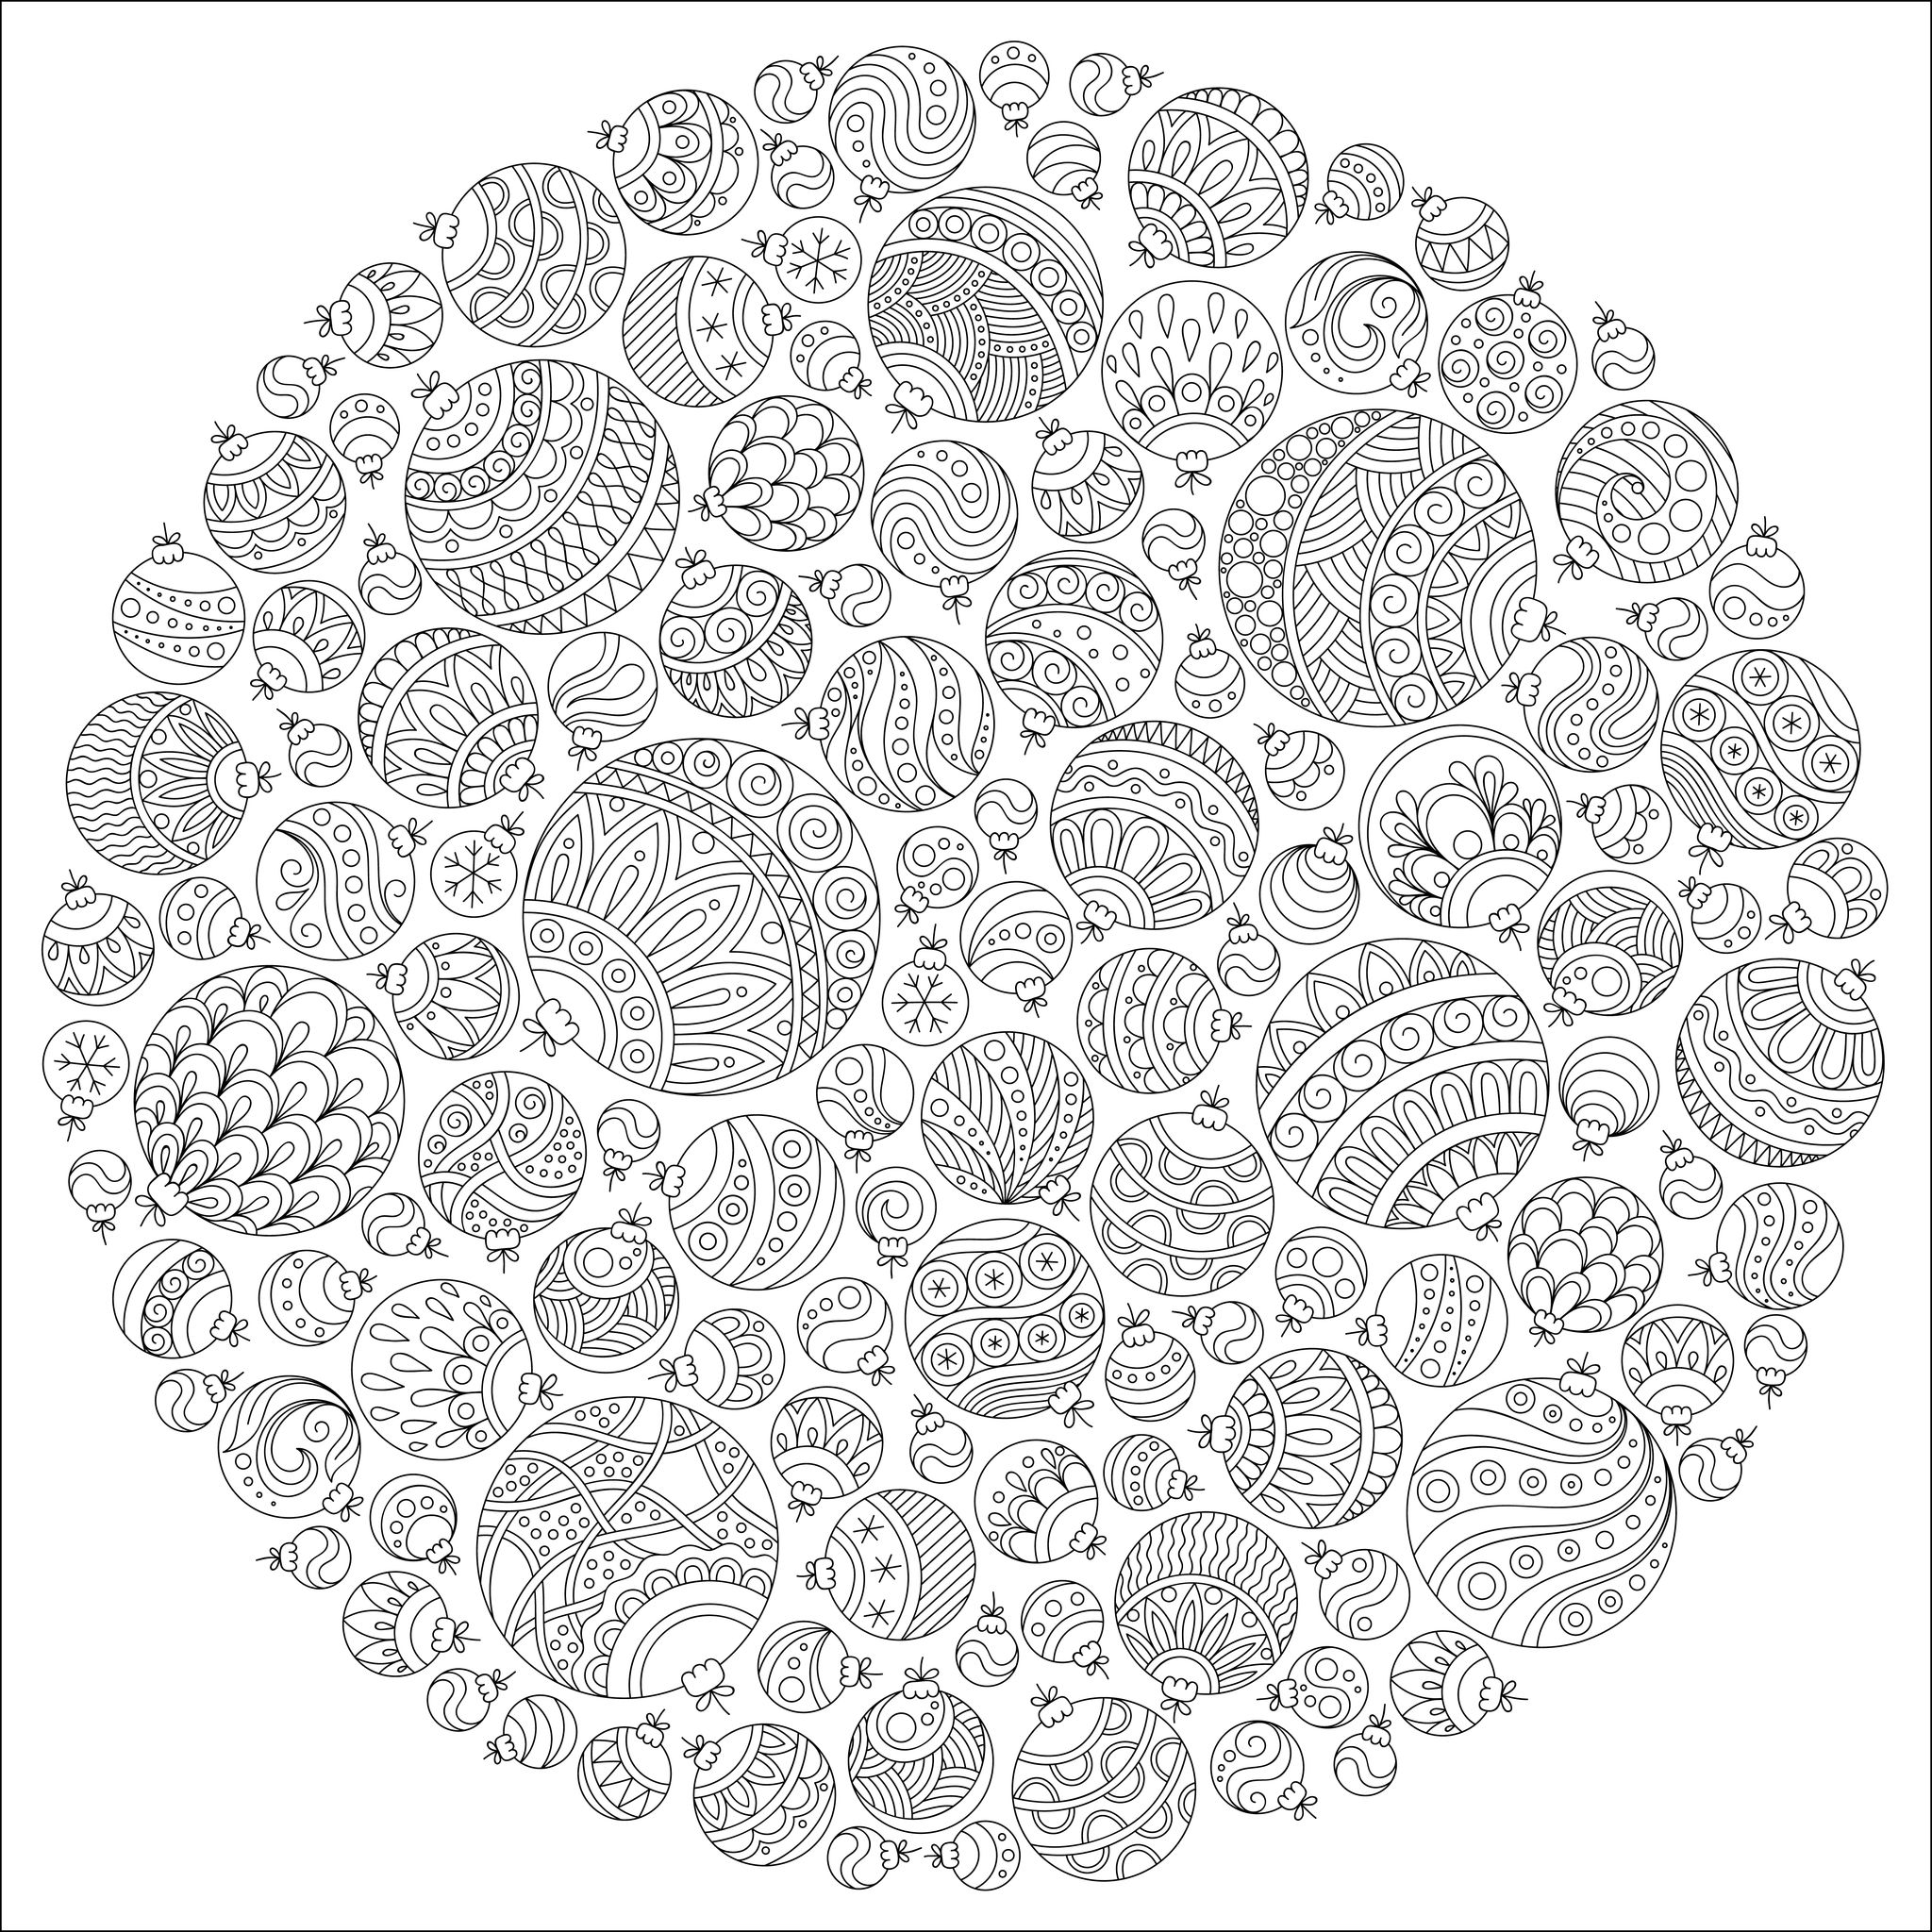 47952727 - pattern for coloring book. christmas hand-drawn decorative elements in vector. fancy christmas ball from balls . pattern for coloring book. black and white pattern.A partir de la galerie : Noel